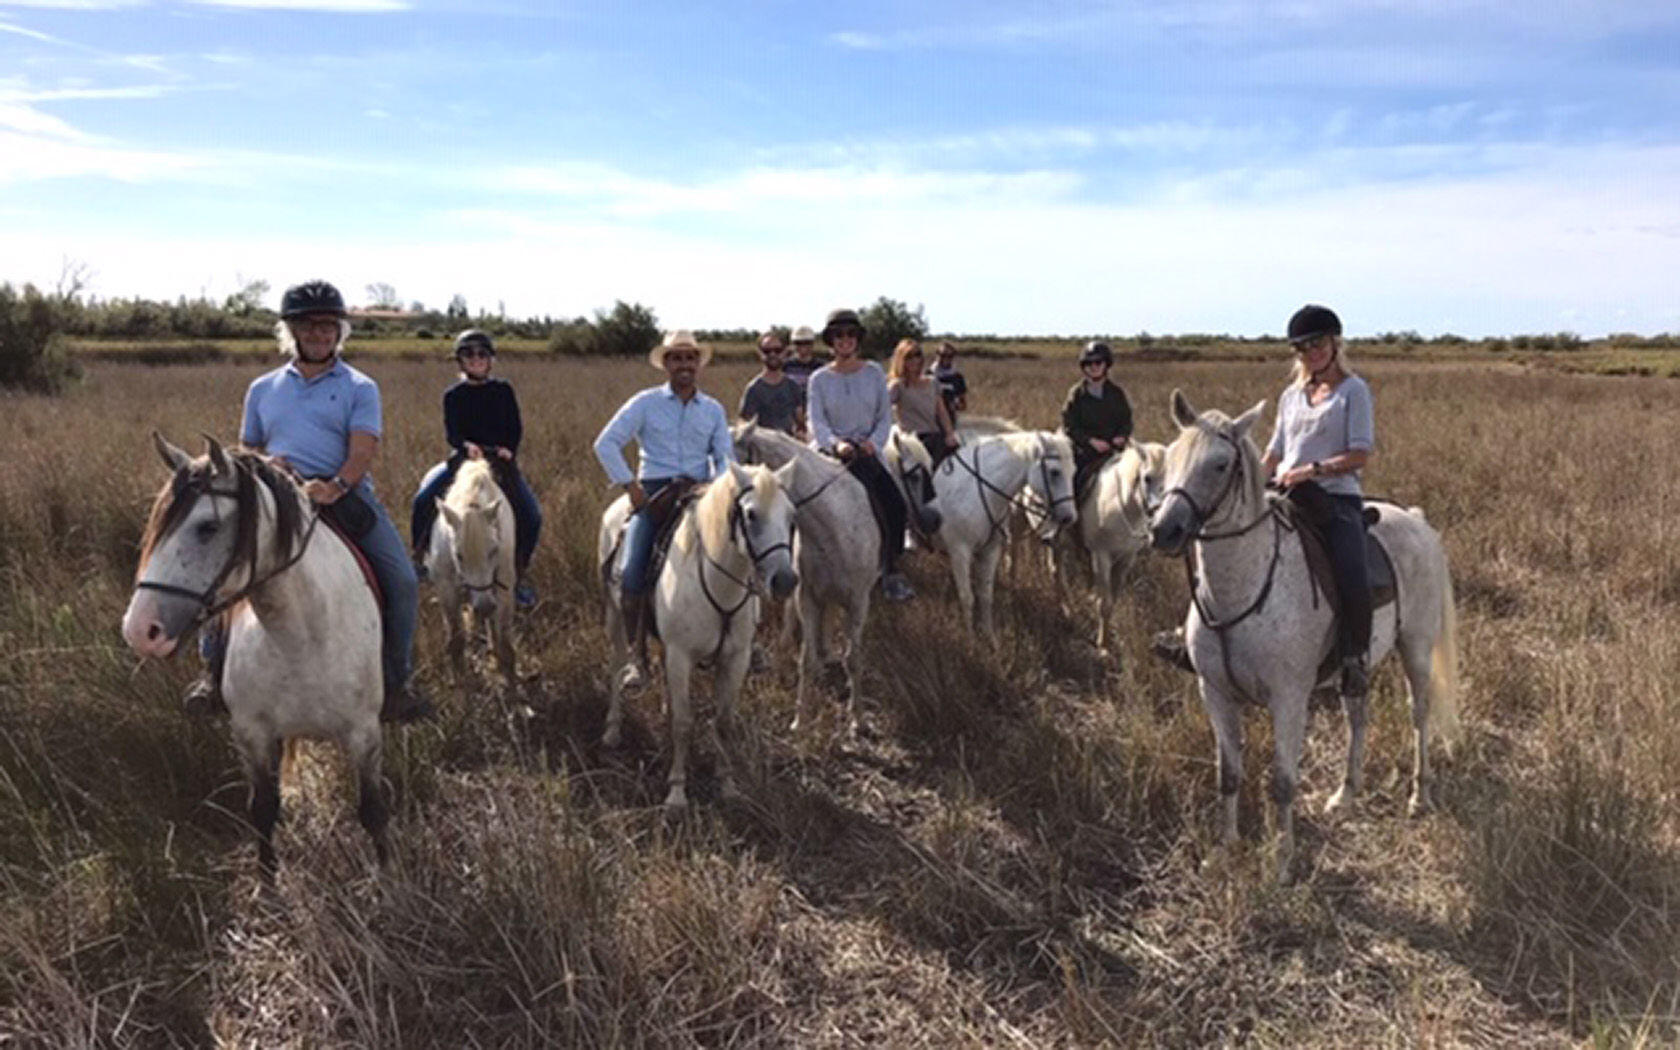 Camargue Horseback Riding la Belle Vie Yoga